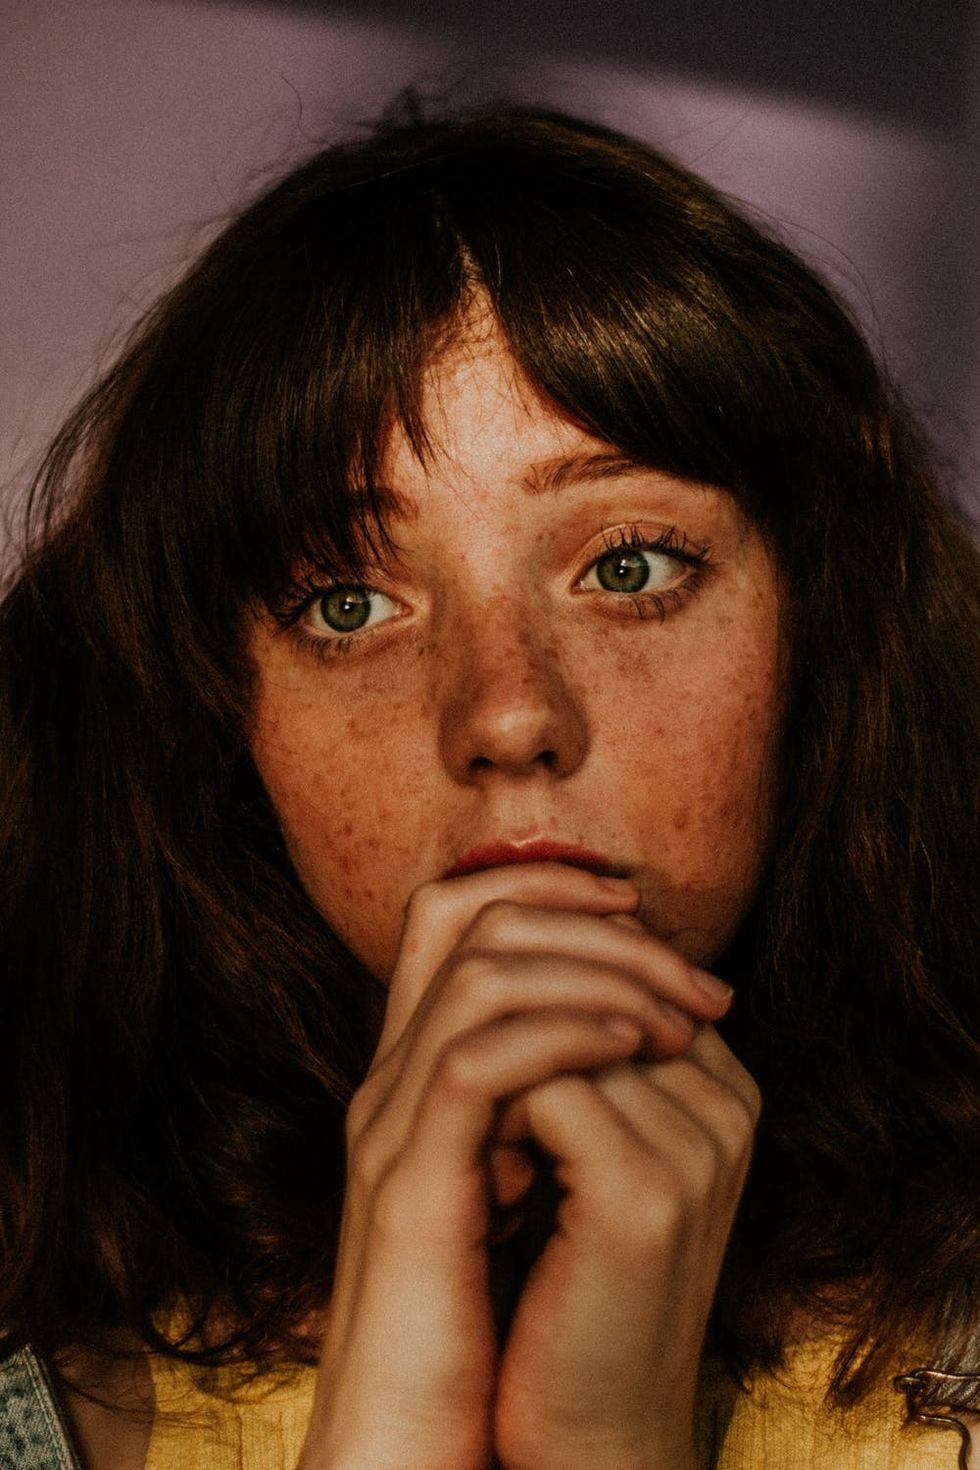 My Freckles Are Not A Beauty Trend For You To Appropriate And Immitate